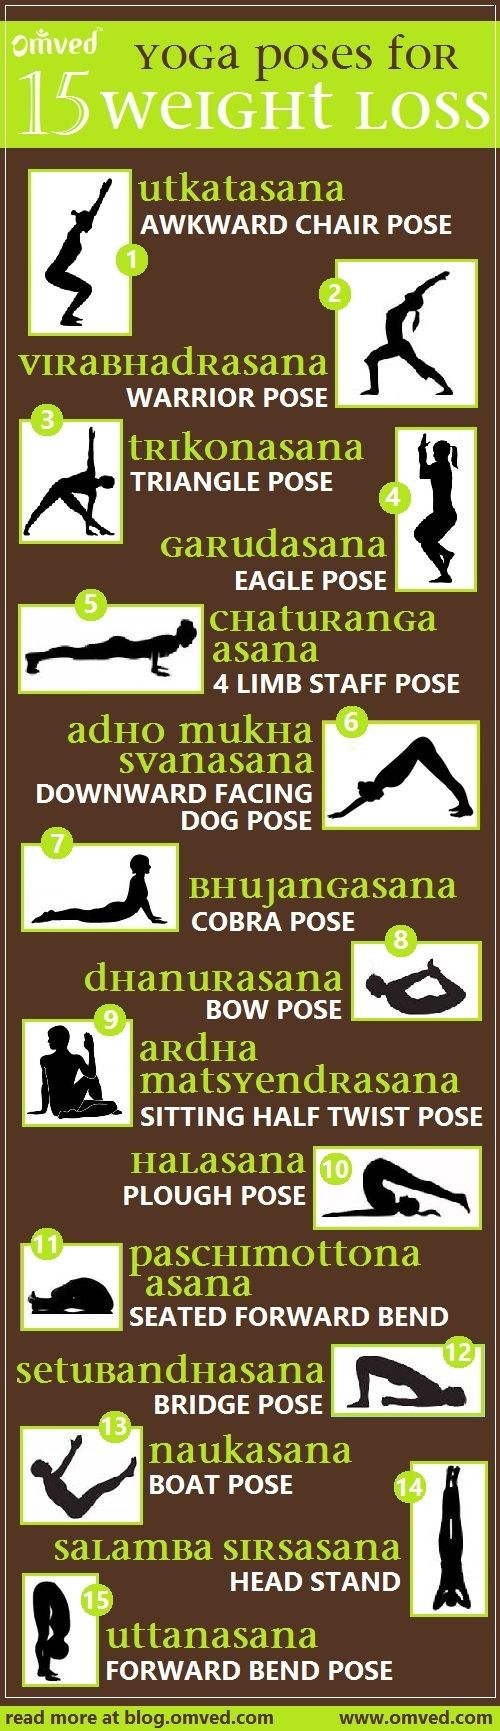 Top 15 yoga poses for WEIGHT LOSS - Although Yoga is not always the popular choice for serious fat burning or weight loss, yet it is an extremely effective tool specially for fighting stubborn fat stores. Yoga offers a well-balanced fitness routine that increases flexibility and boosts muscle strength. Yoga is a mind-body exercise that on your weight loss journey can help you shed pounds, and definitely keep you from gaining weight. Try these fat-burning poses today! #weightloss